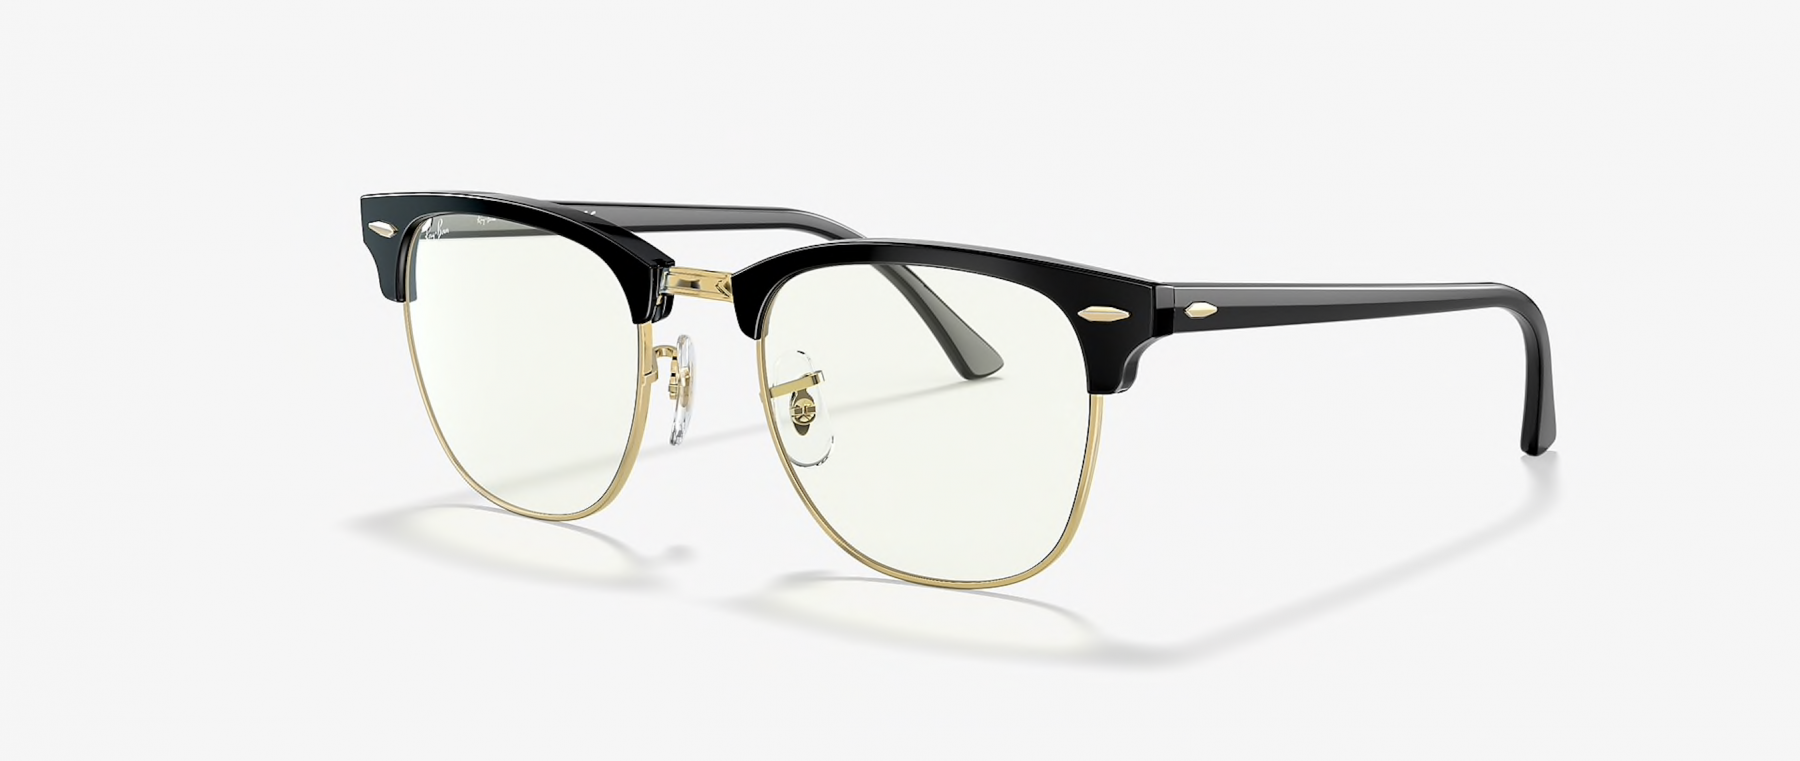 Ray-Ban clubmaster blue light glasses